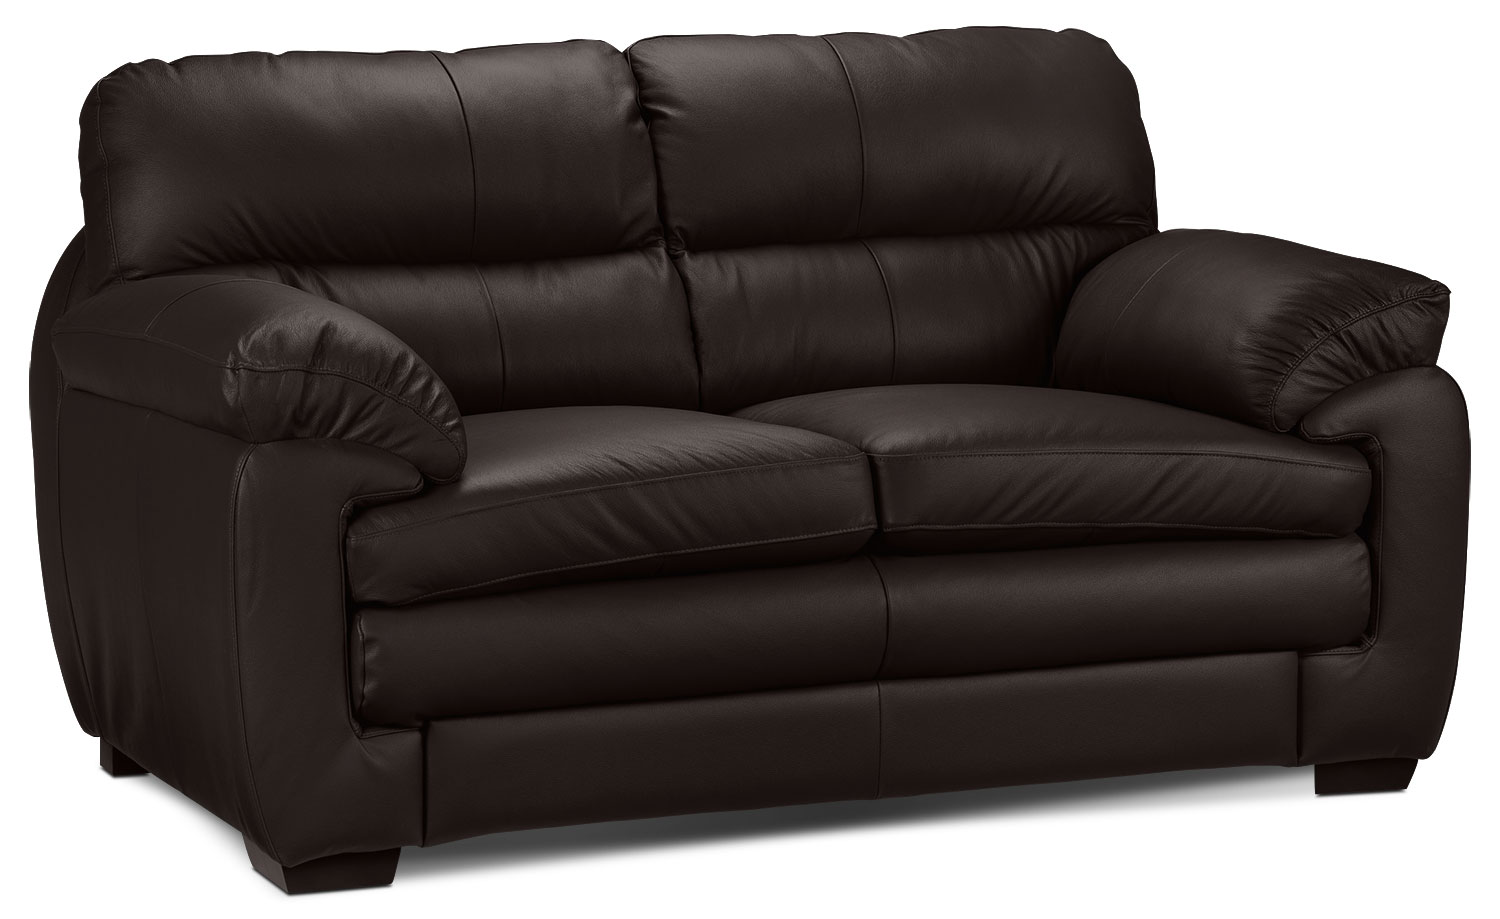 Living Room Furniture - Cambria Loveseat - Coffee